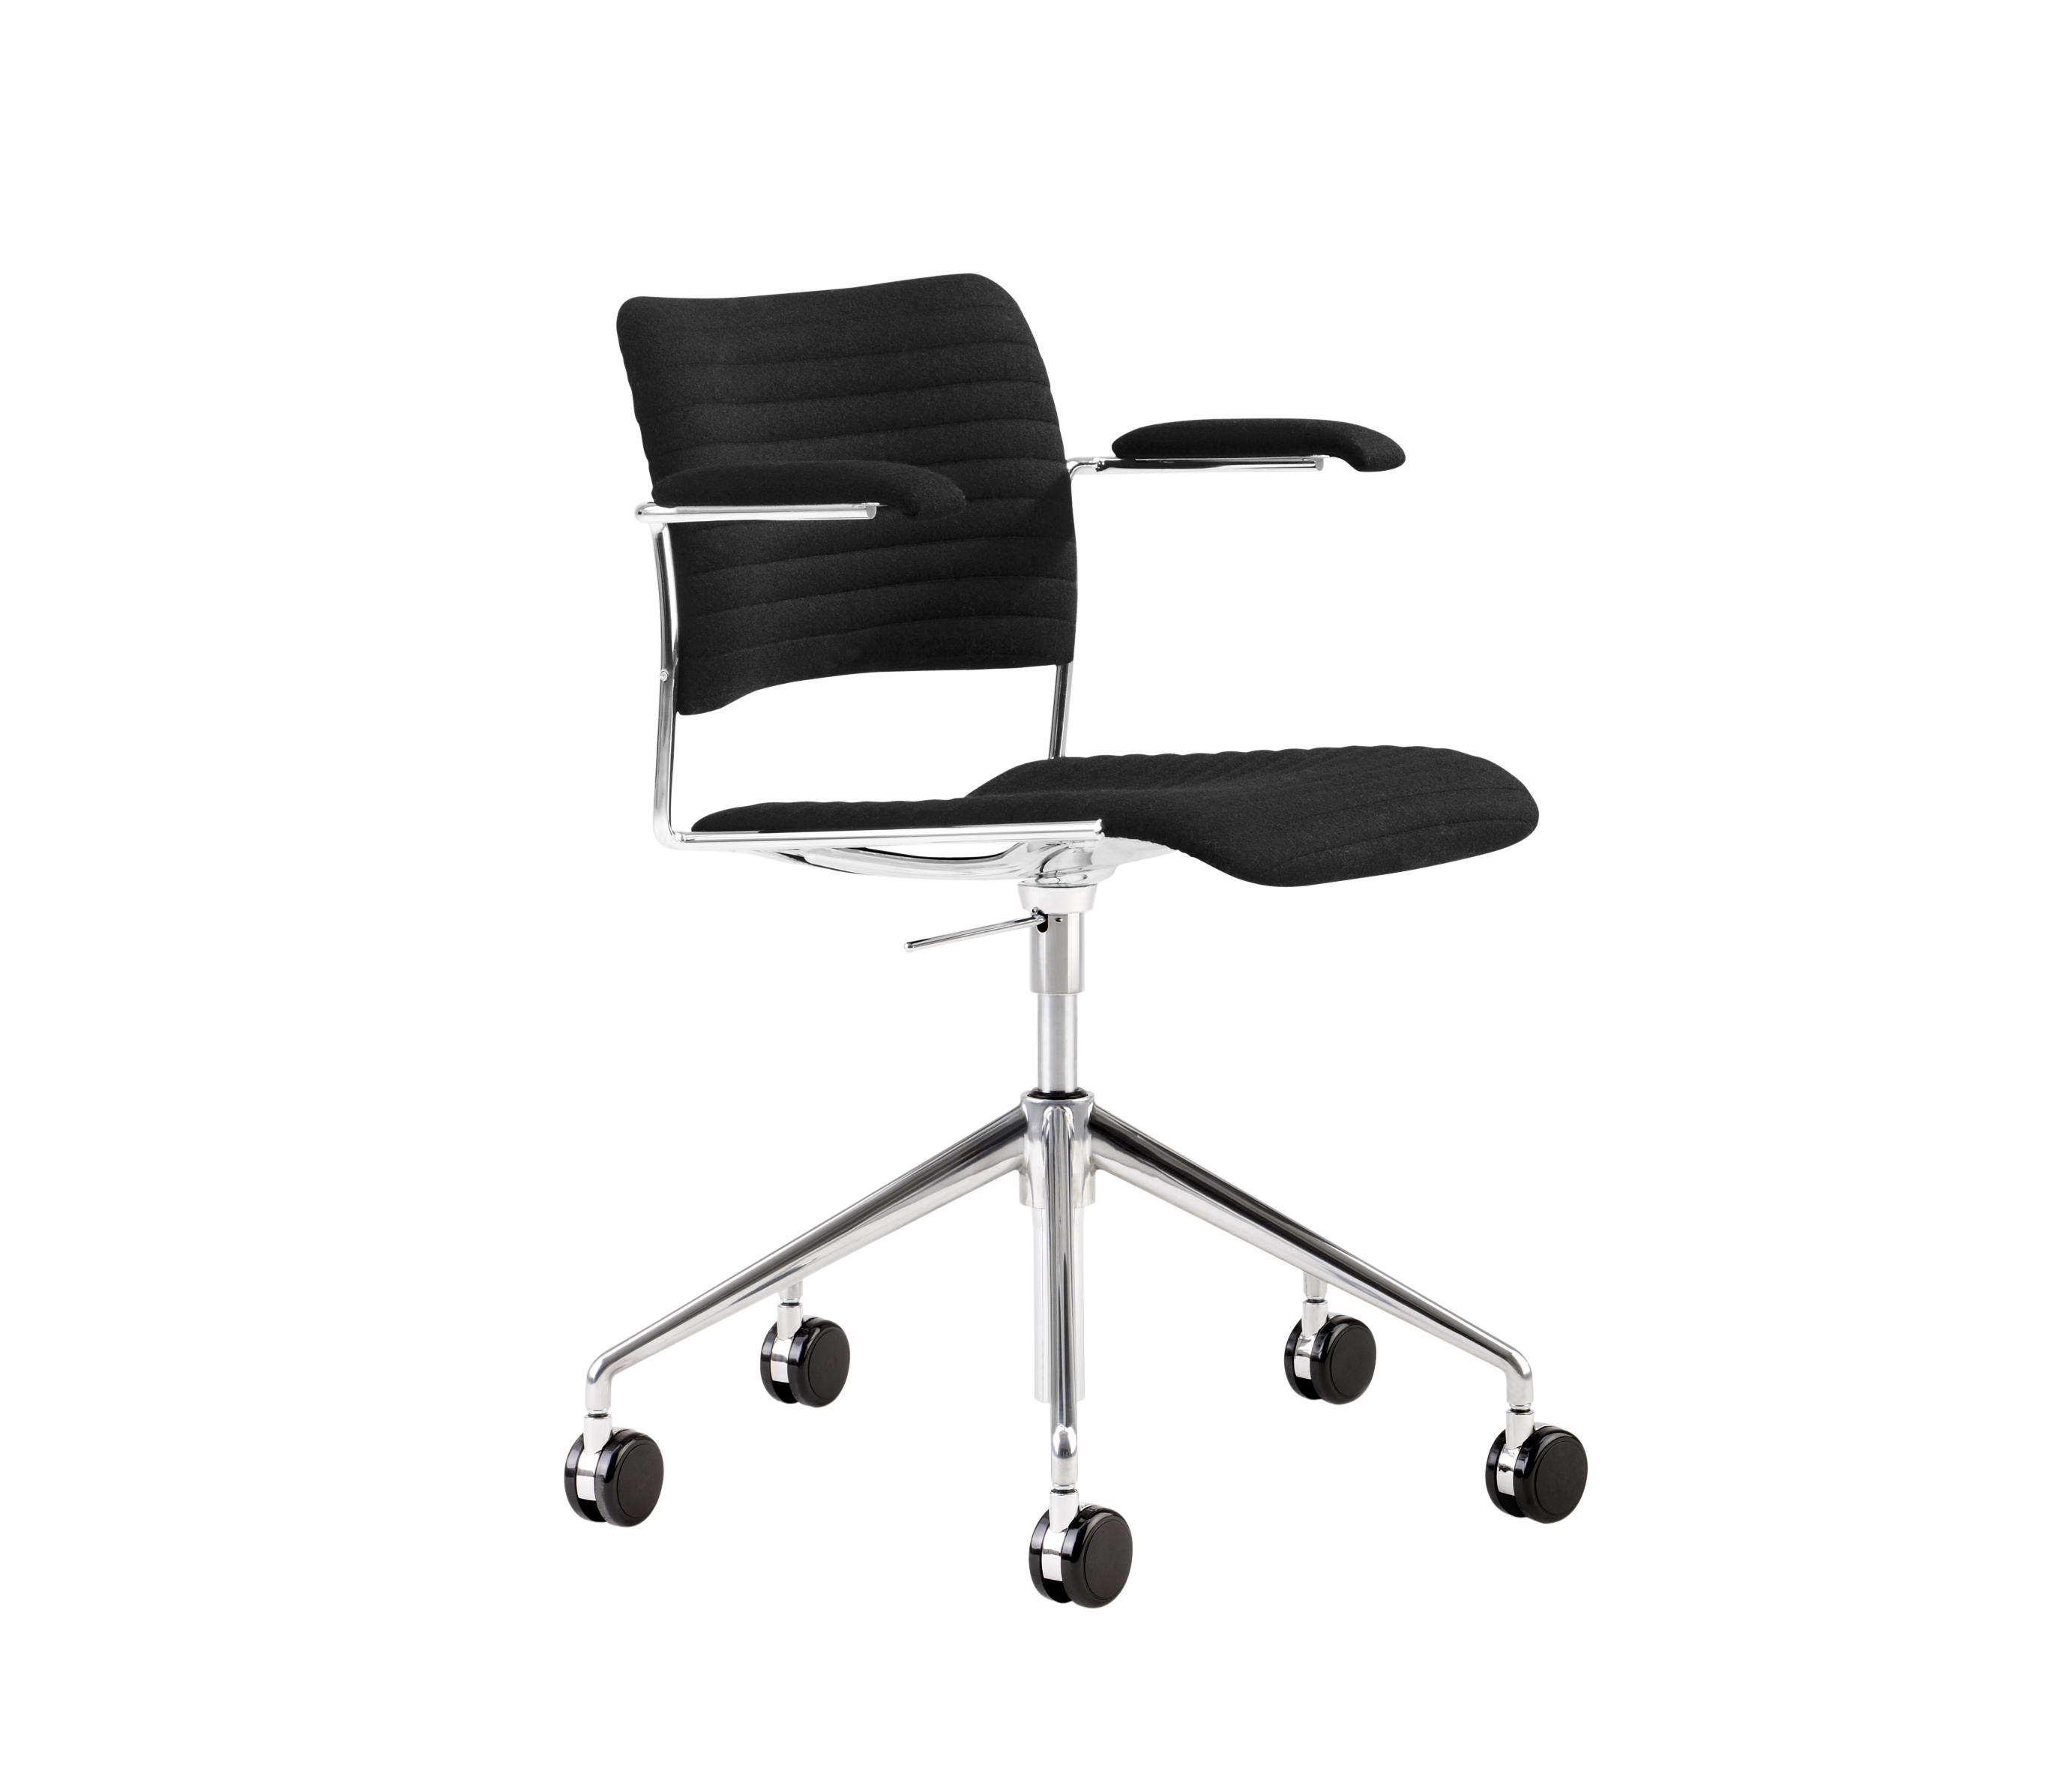 40/4 Swivel Chair By HOWE | Chairs